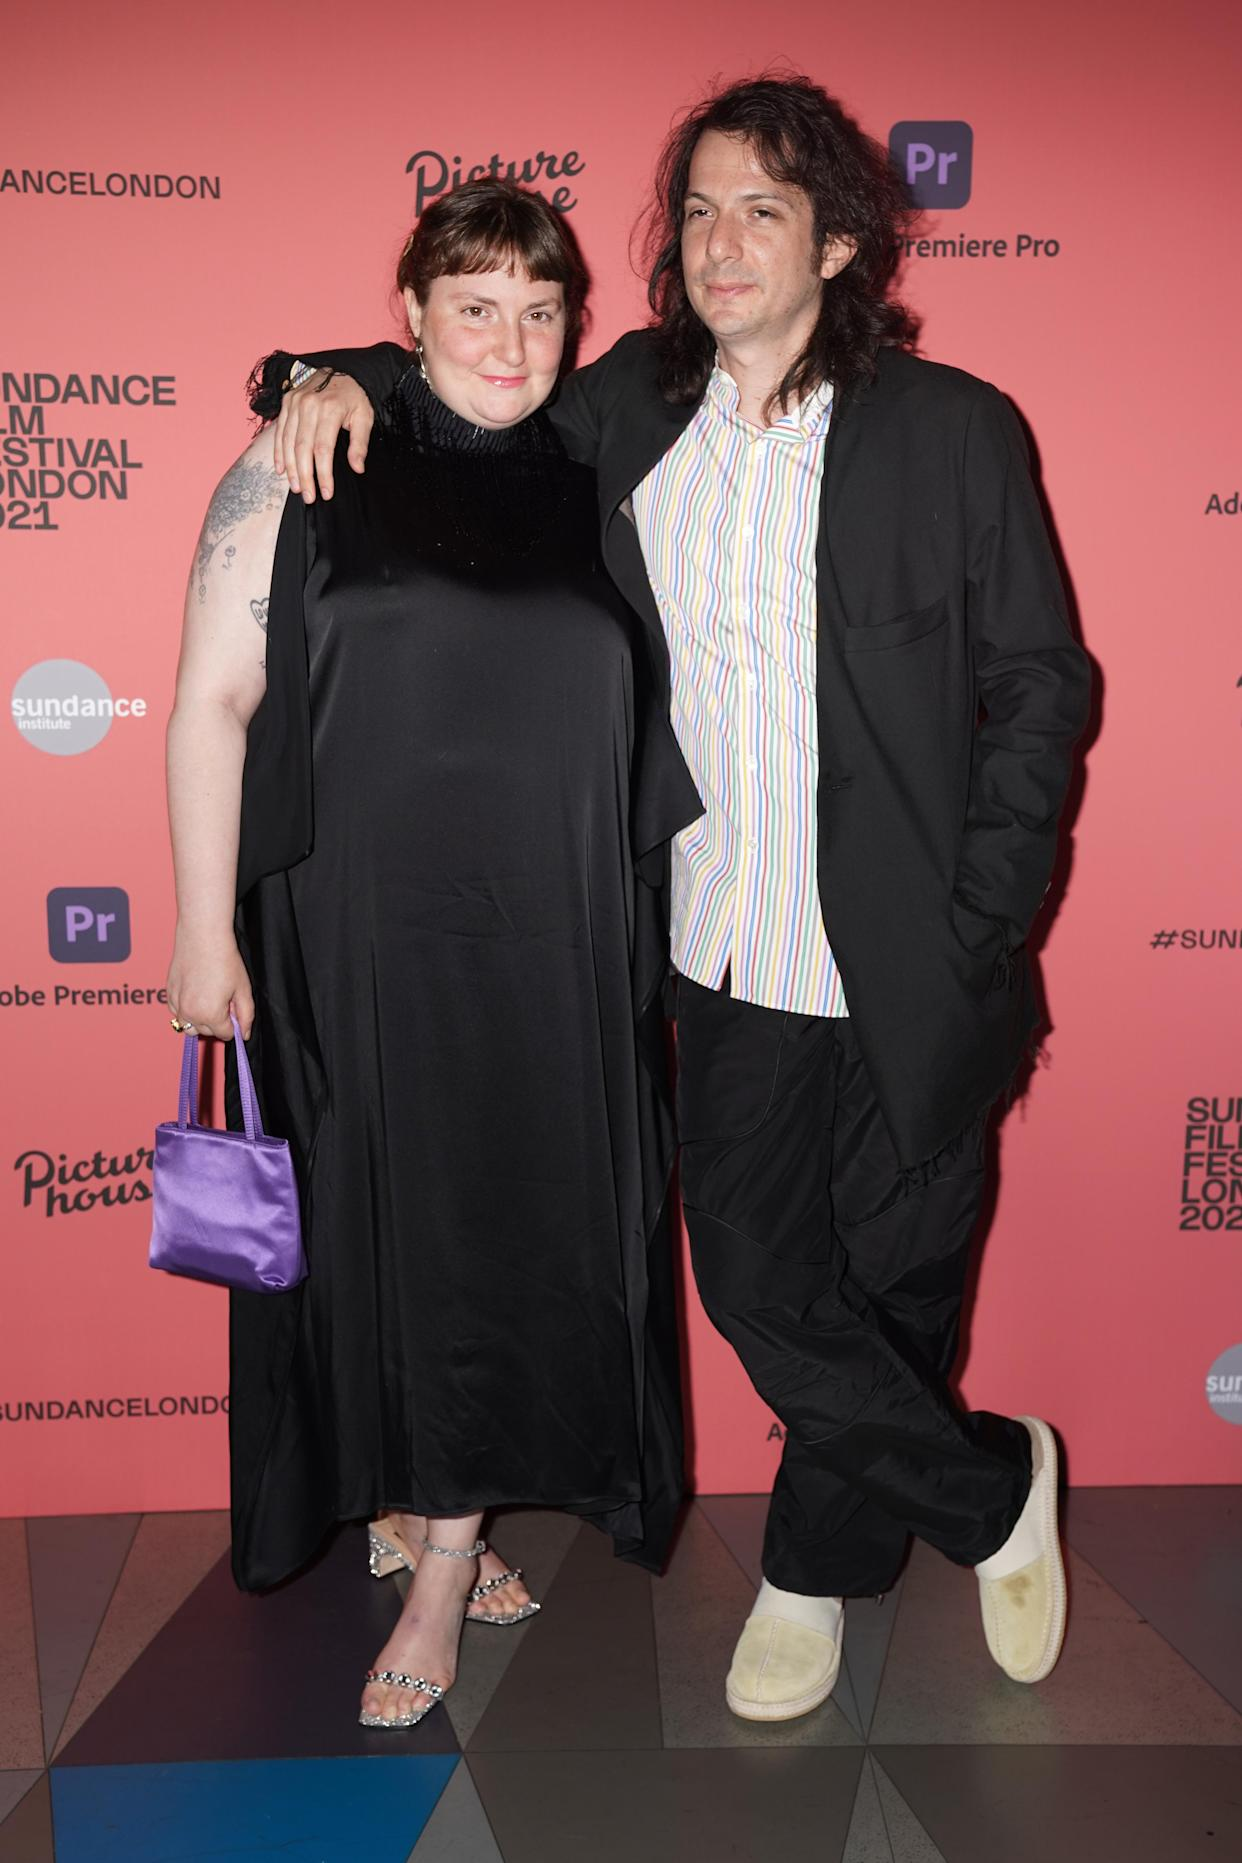 Lena Dunham and Luis Felber attend the Sundance London Film Festival screening of Zola, at the Picturehouse Central Cinema, in Piccadilly, London. Picture date: Sunday August 1, 2021. (Photo by Kirsty O'Connor/PA Images via Getty Images)